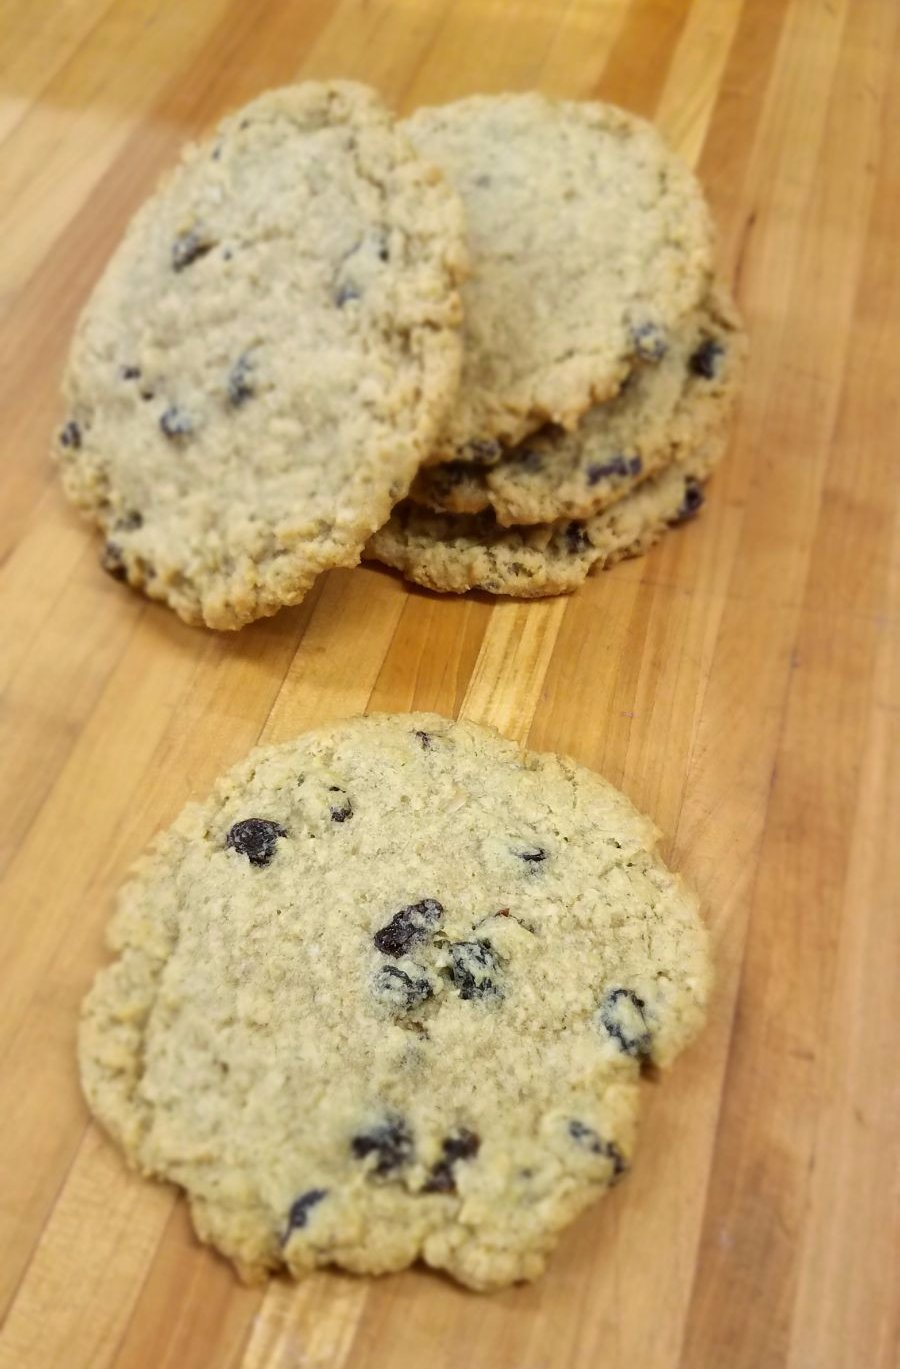 Homemade Gourmet Oatmeal Raisin Cookie - 6 Pack